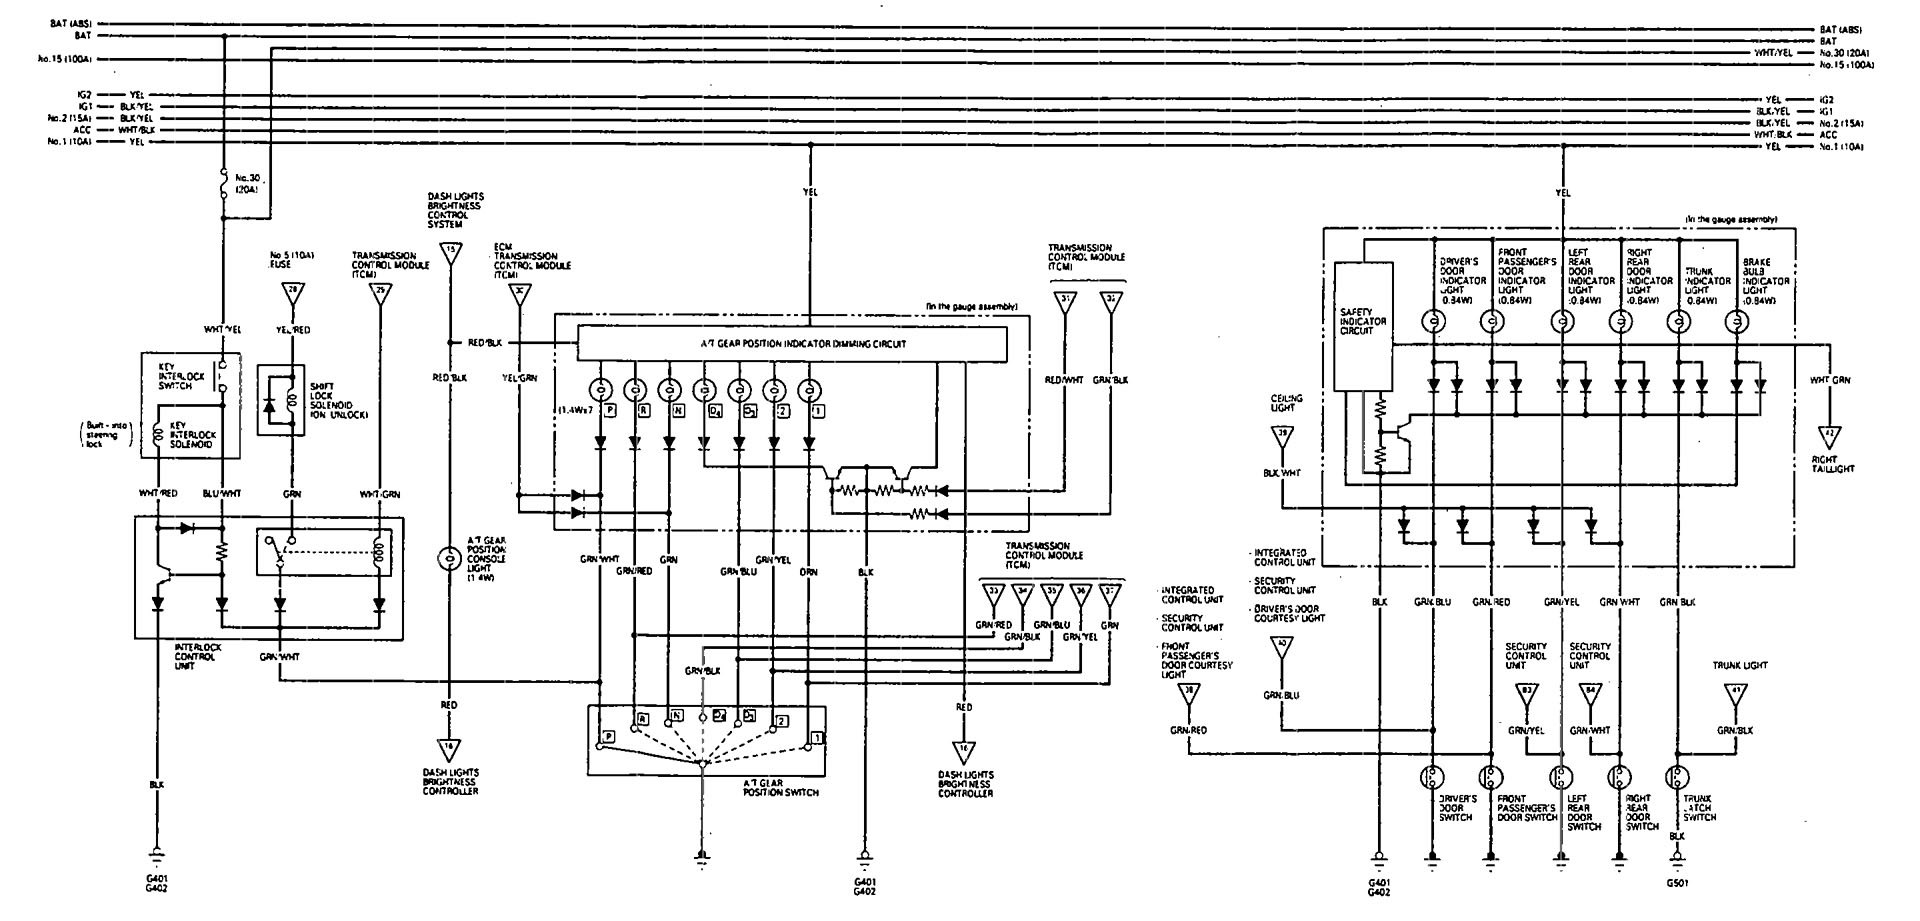 Gear Indicator Wiring Diagram Engine Diagrams Pinout Lighting Motor Mustang